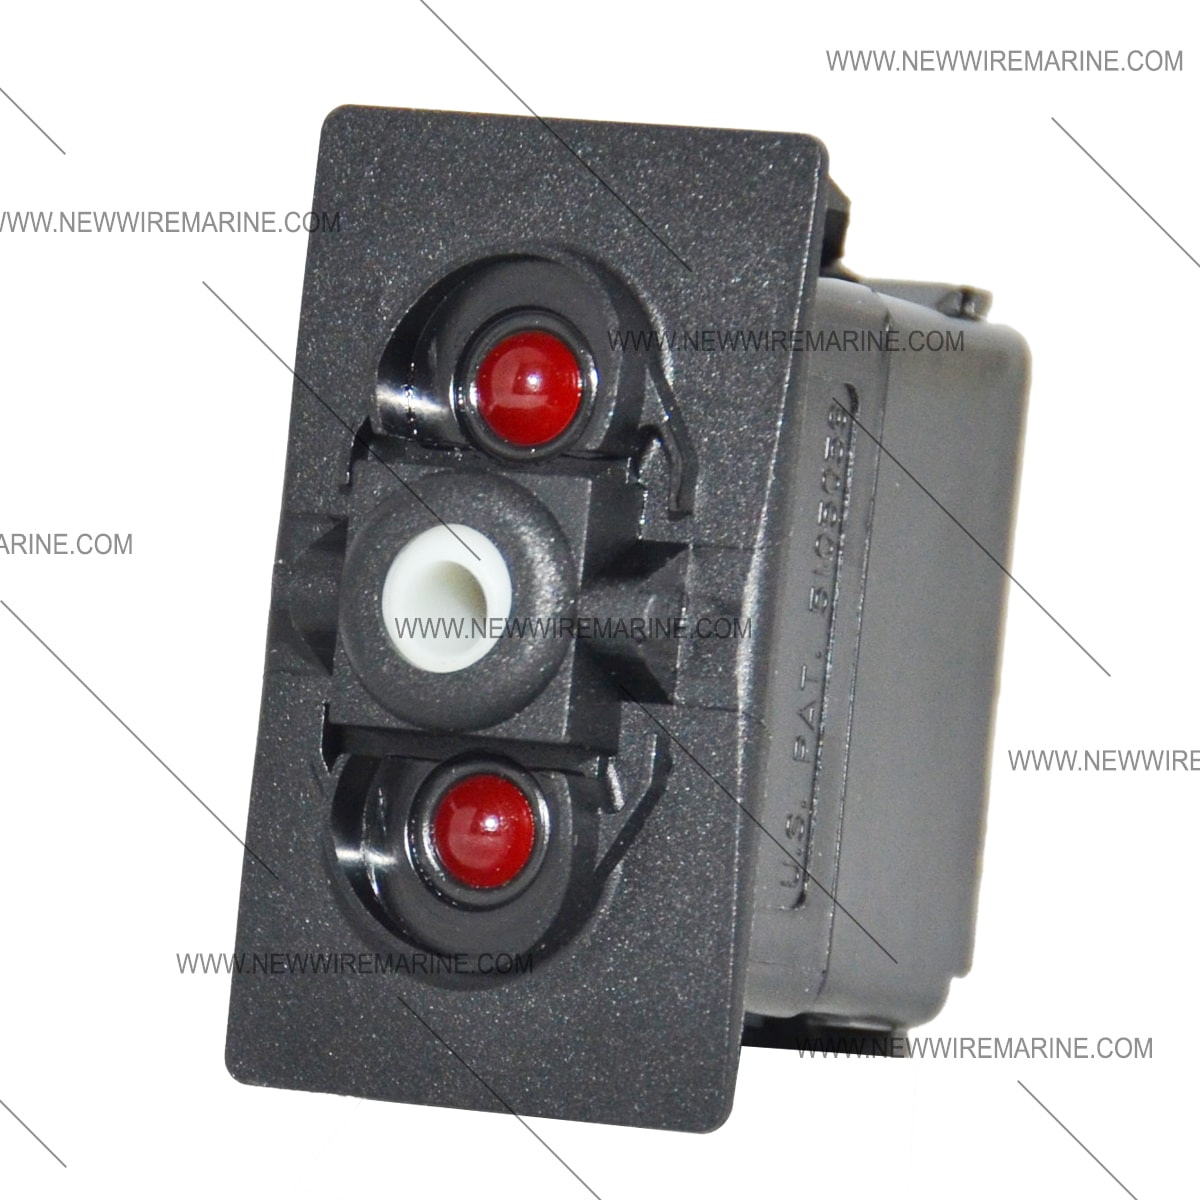 hight resolution of on off red led boat rocker switch carling v1d1 new wire marine led rocker switch wiring led rocker switch wiring